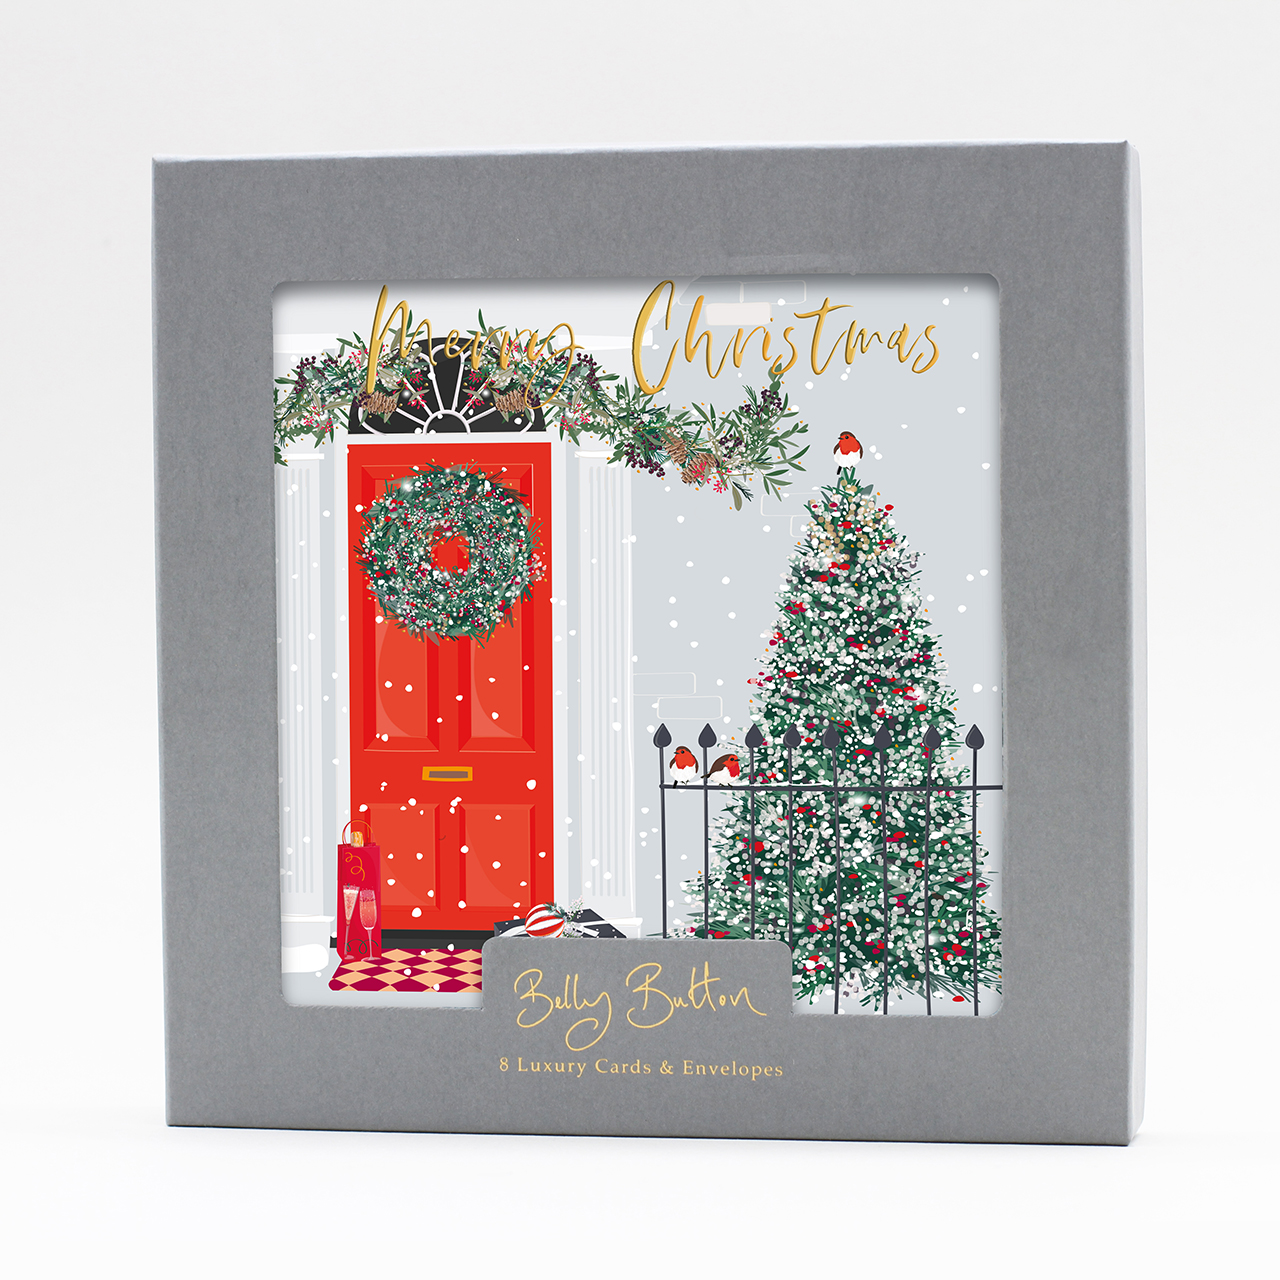 Belly Button Designs, Luxury Christmas Cards, Door (Pack of 8)